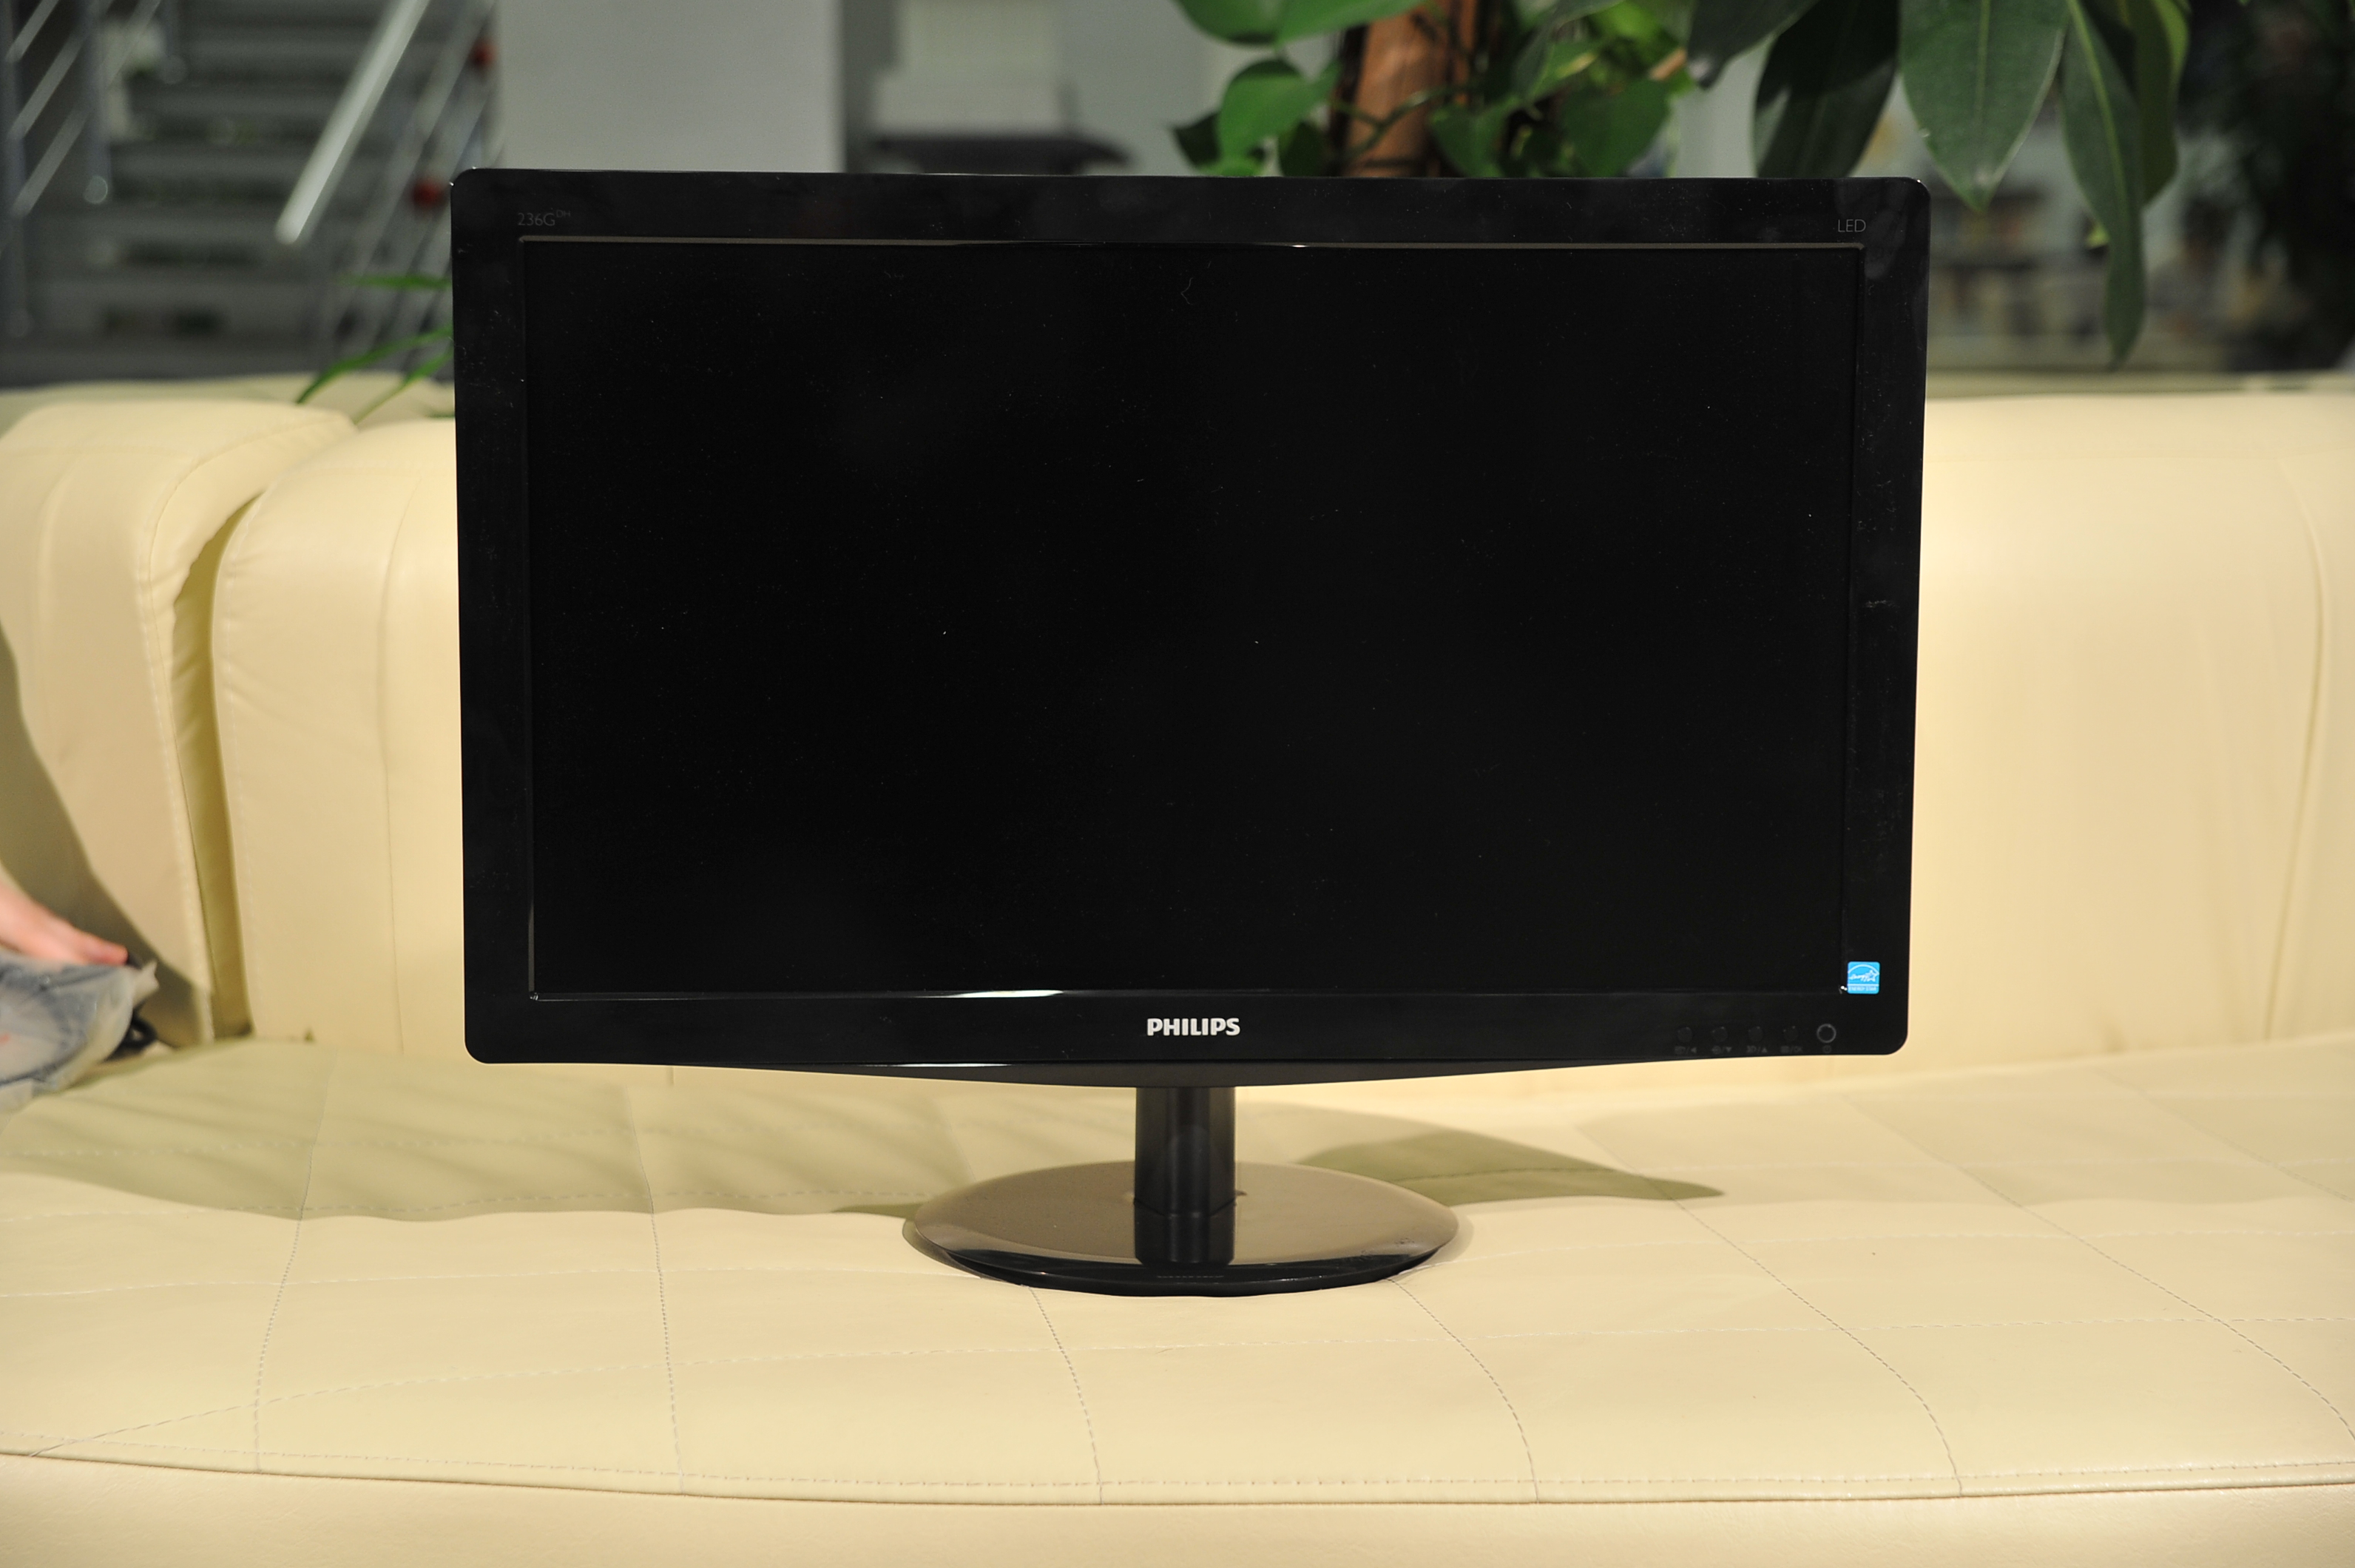 Philips G-line 236G3DH - широкая рамка и обилие глянца